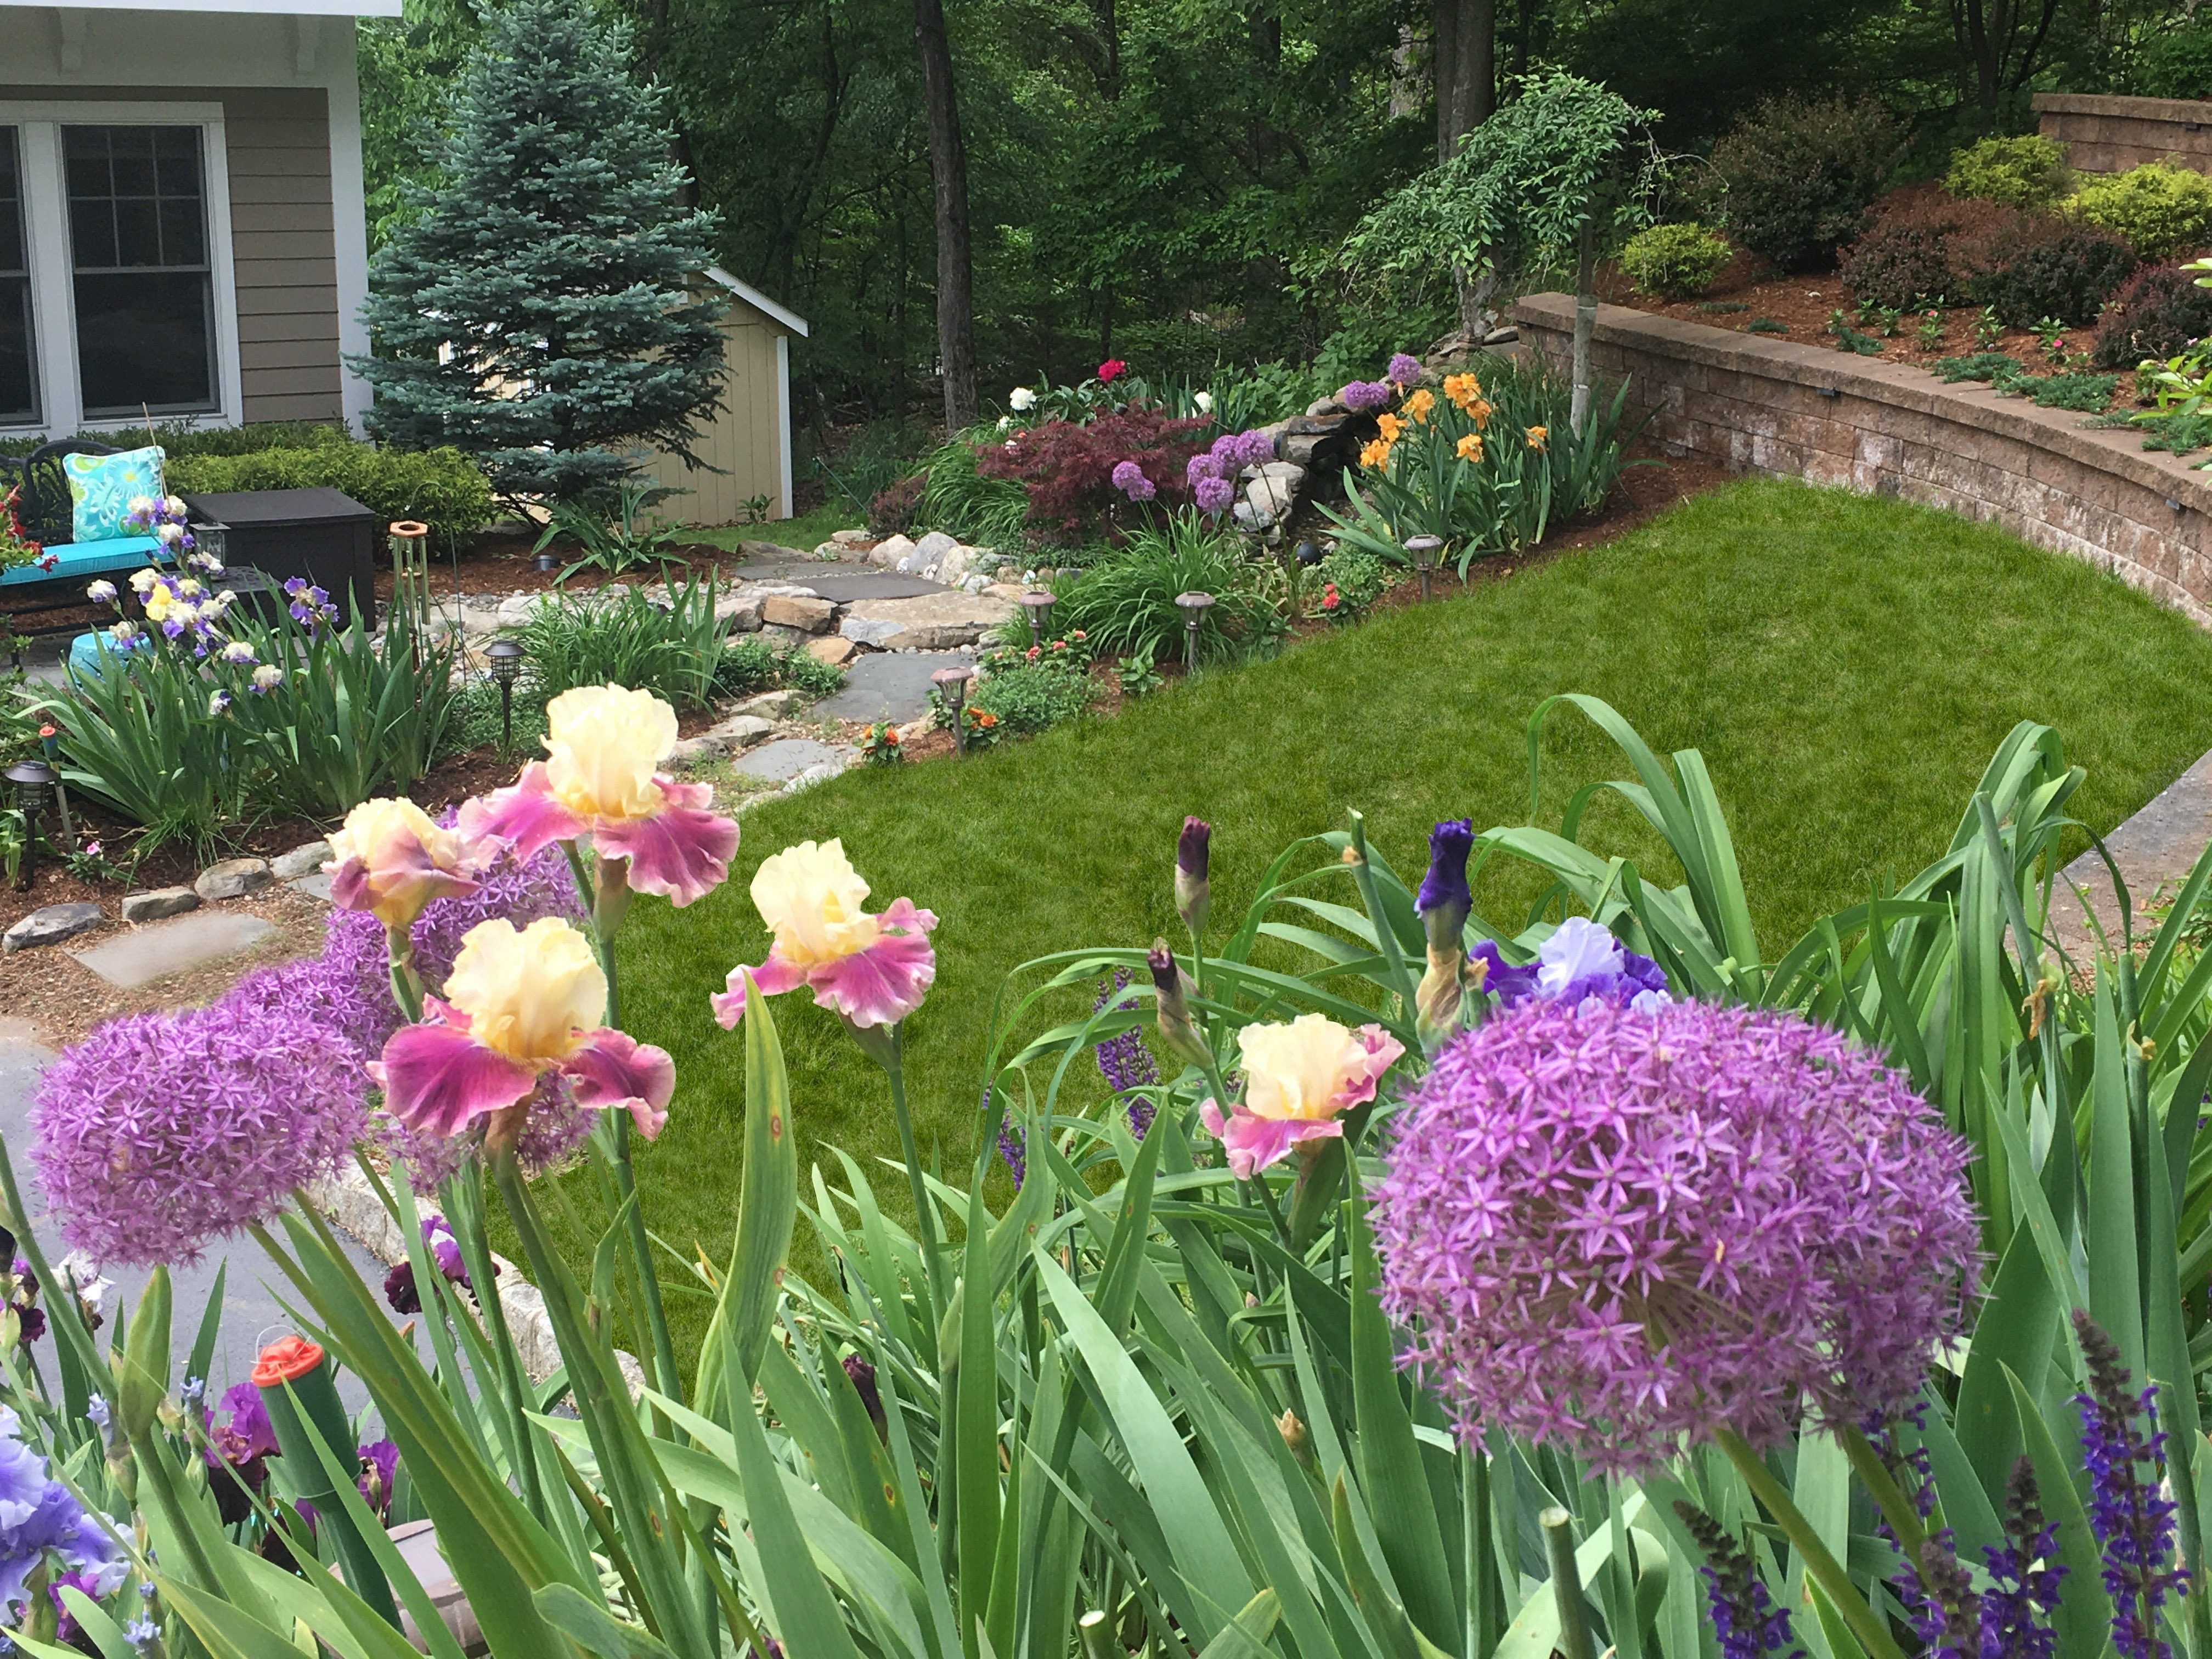 The Best Retaining Wall Contractors Hunterdon County NJ and How to Find Them